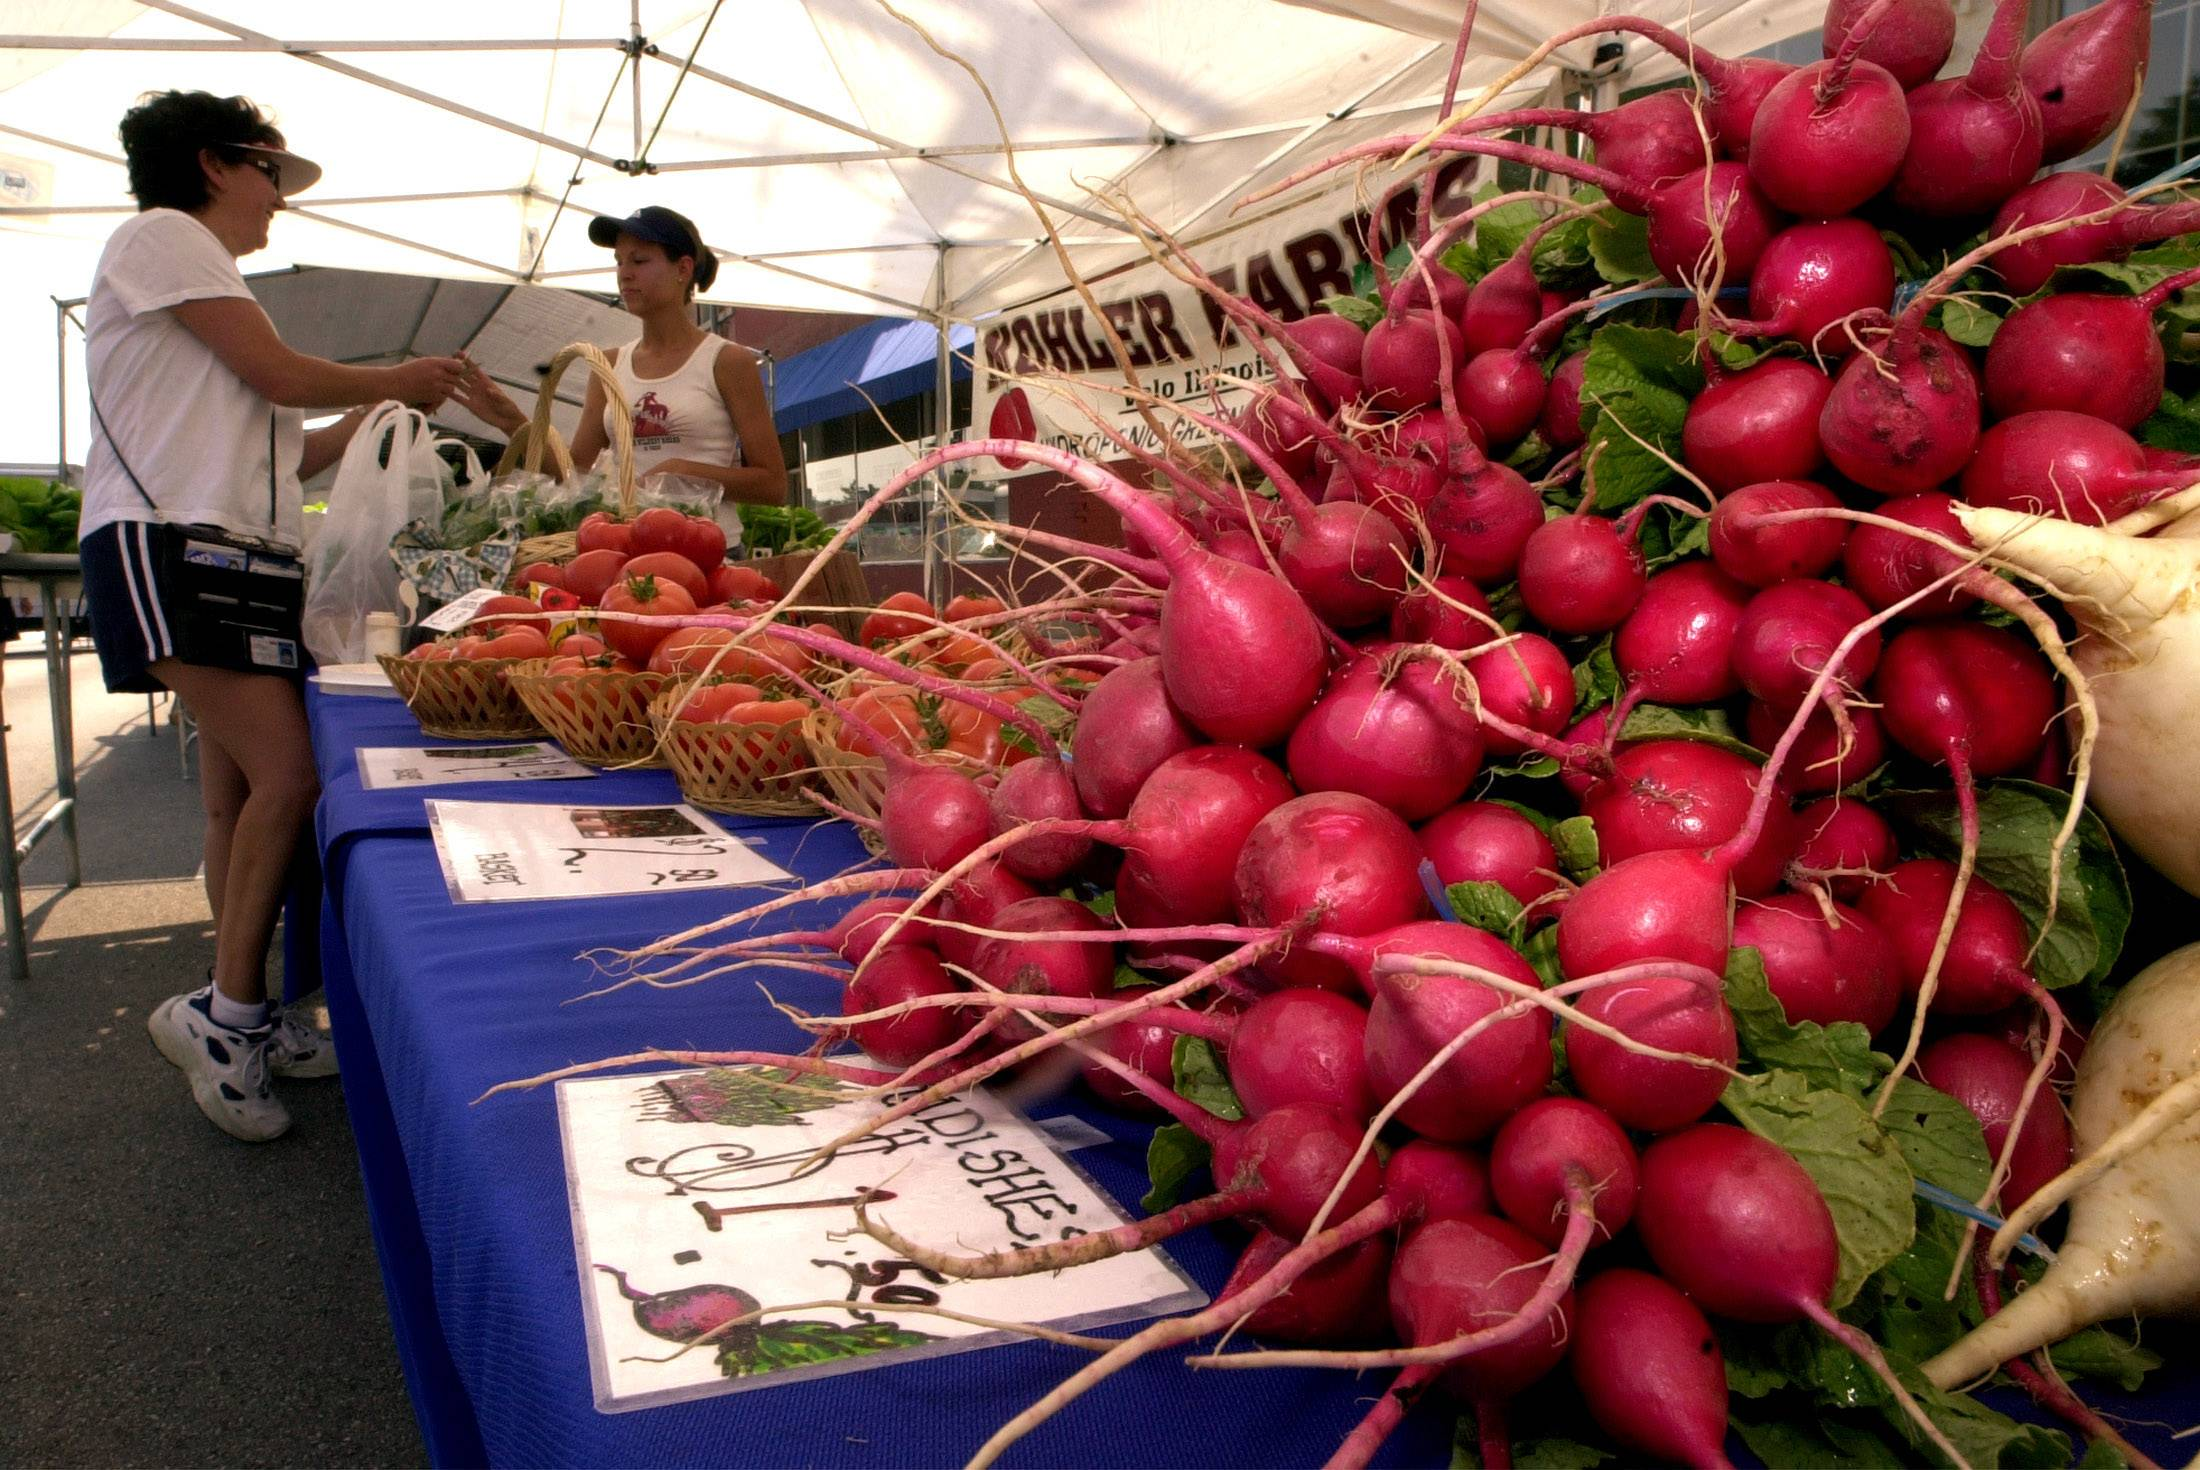 Legislation that would allow the Illinois Department of Health to create a single set of food-safety standards for farmers markets has been passed by both houses of the General Assembly.